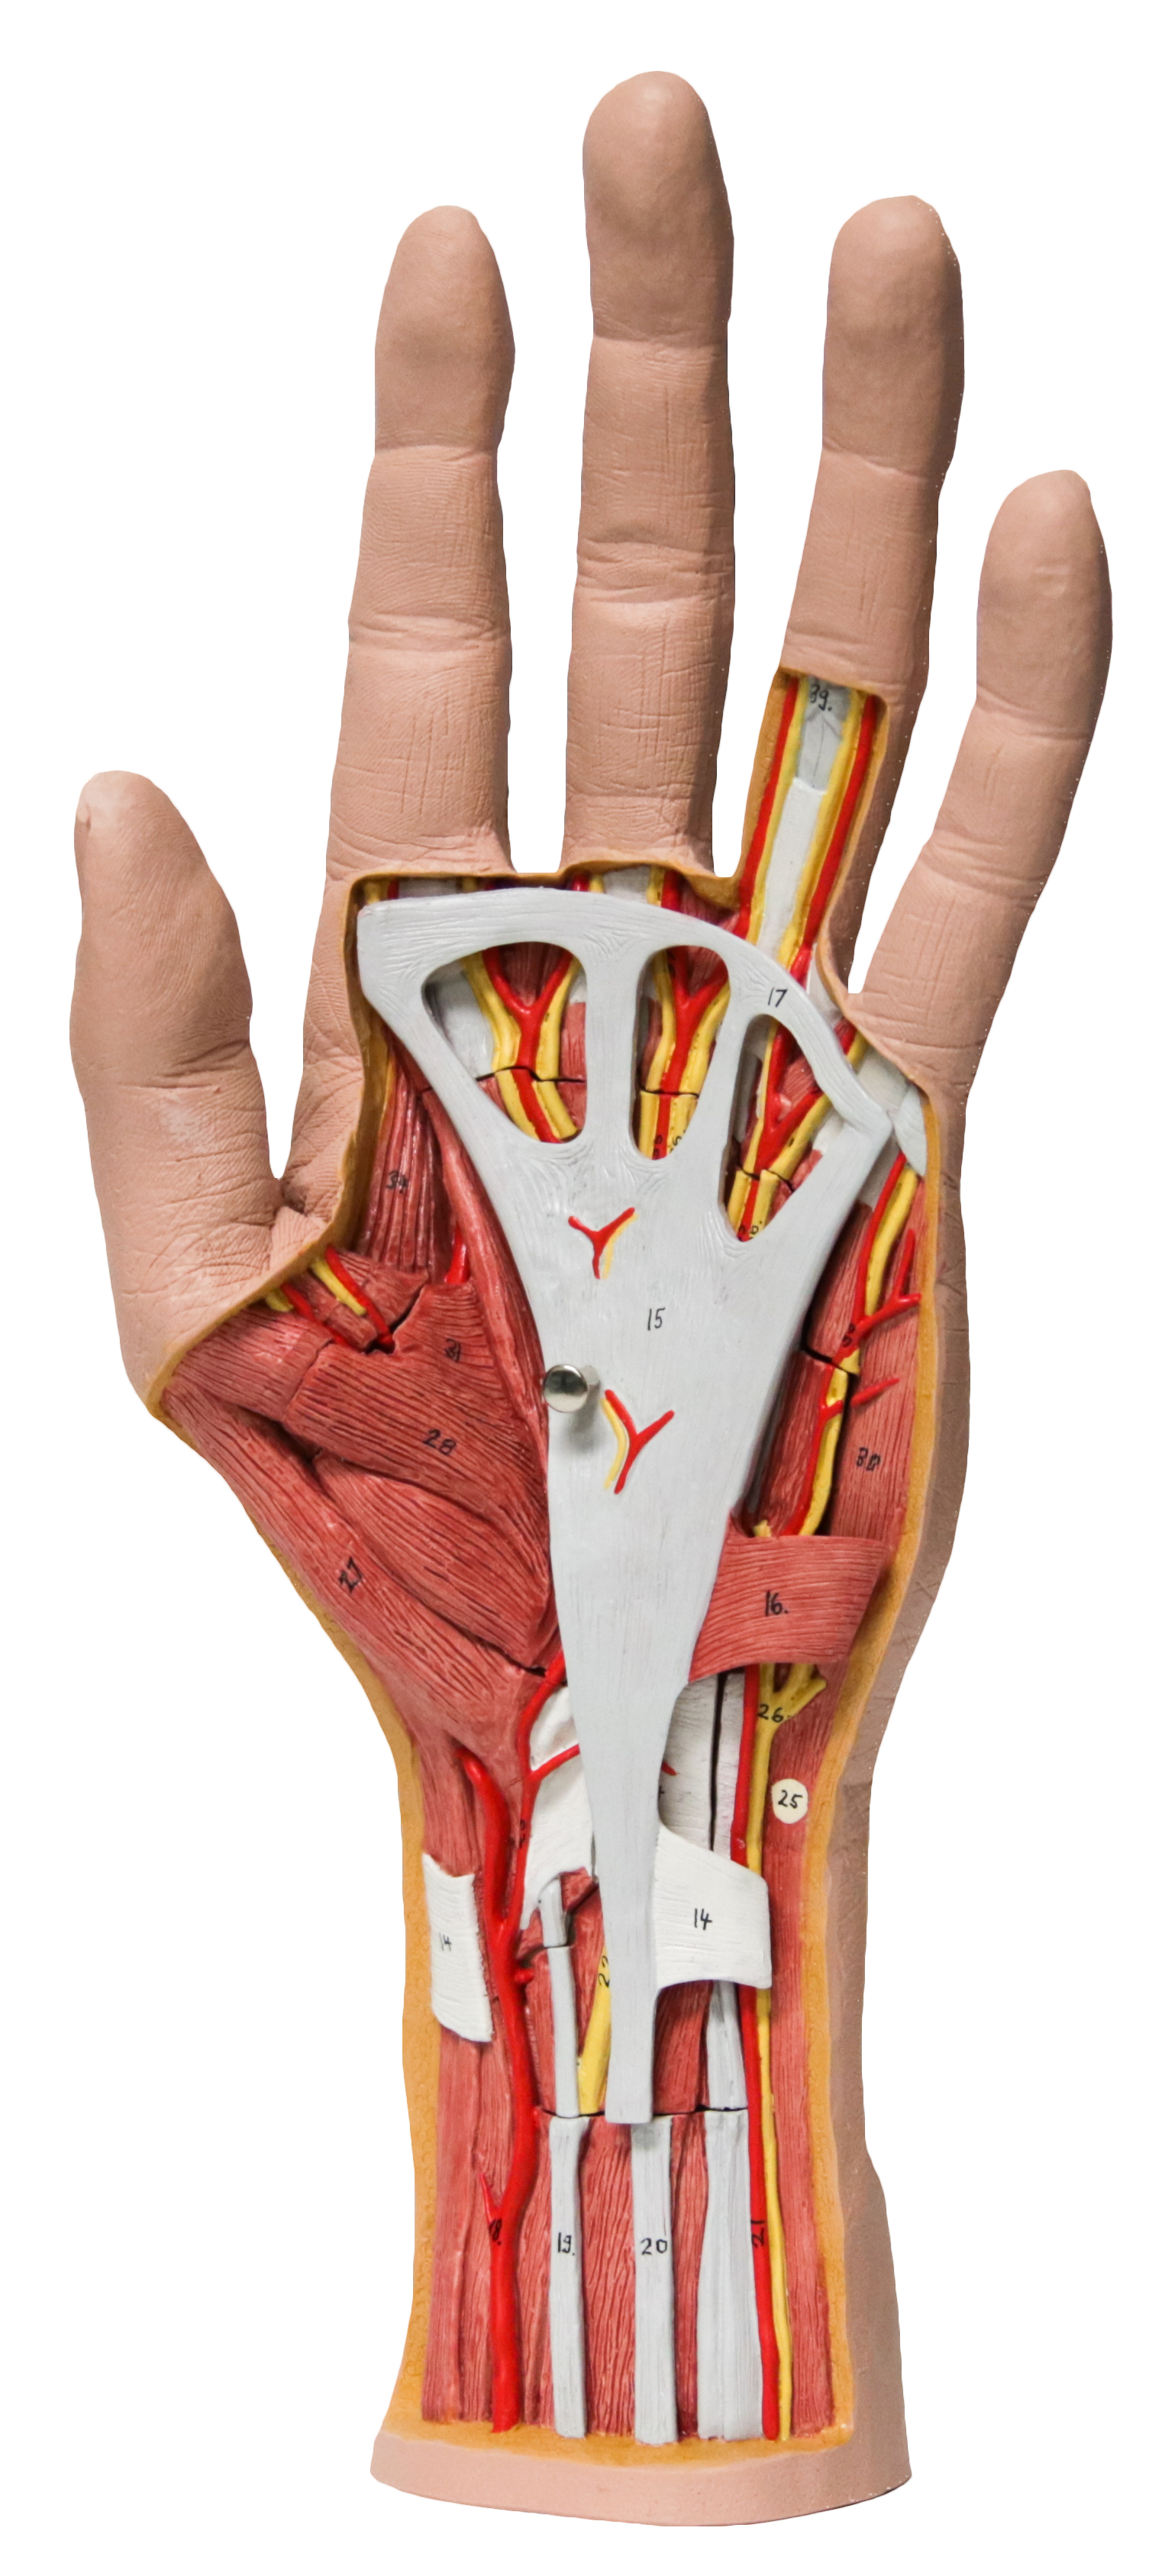 A human hand showing skin, tendons, ligaments, bone